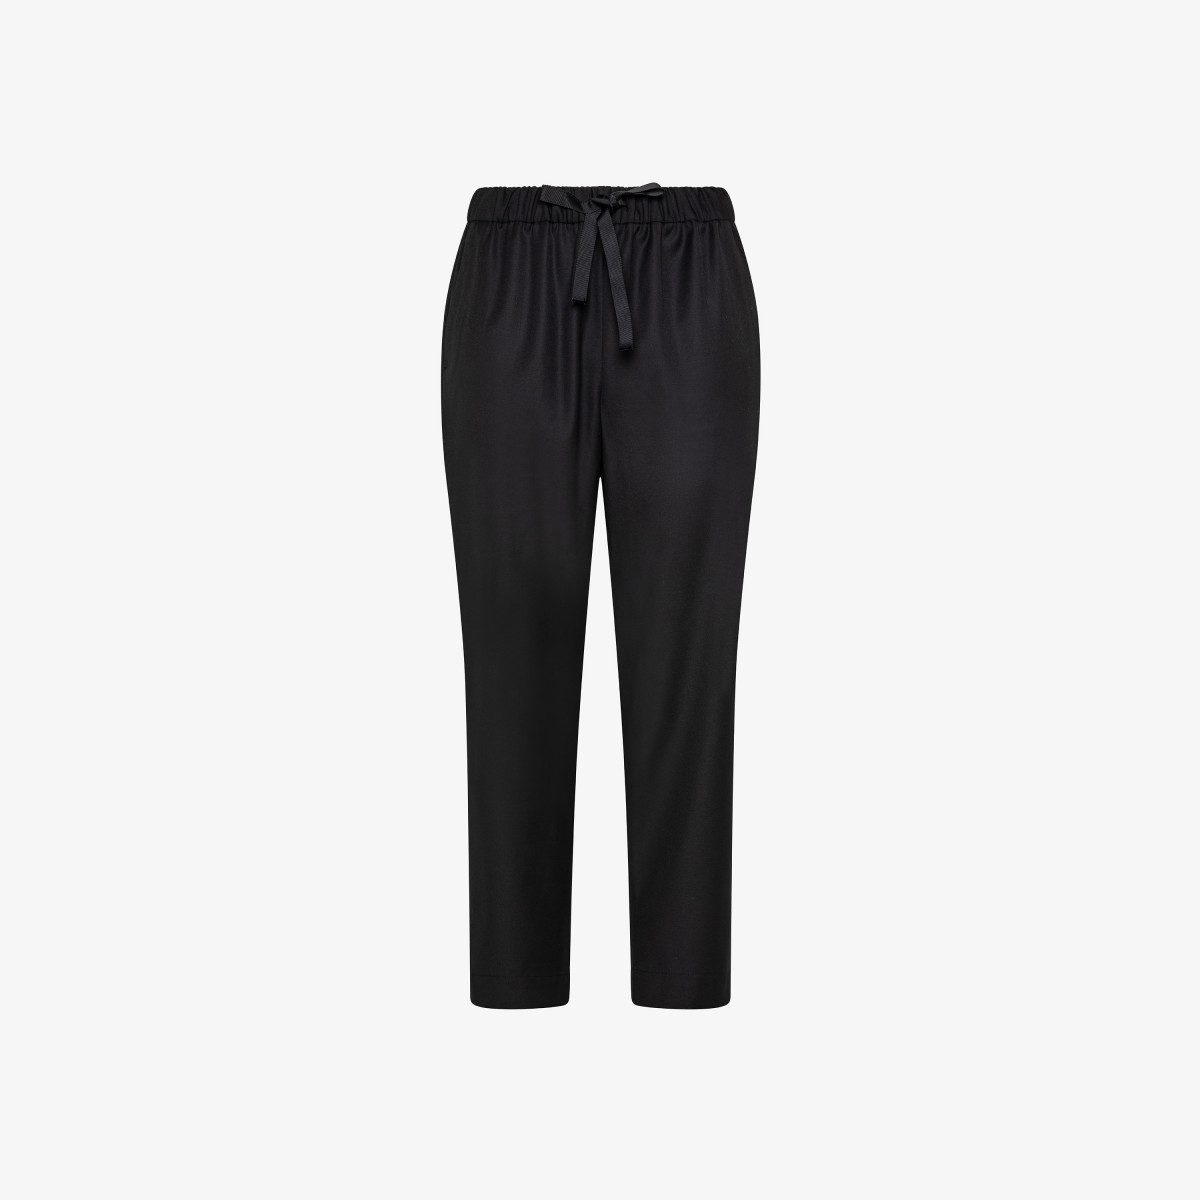 PANT SOLID WITH ELASTIC BLACK